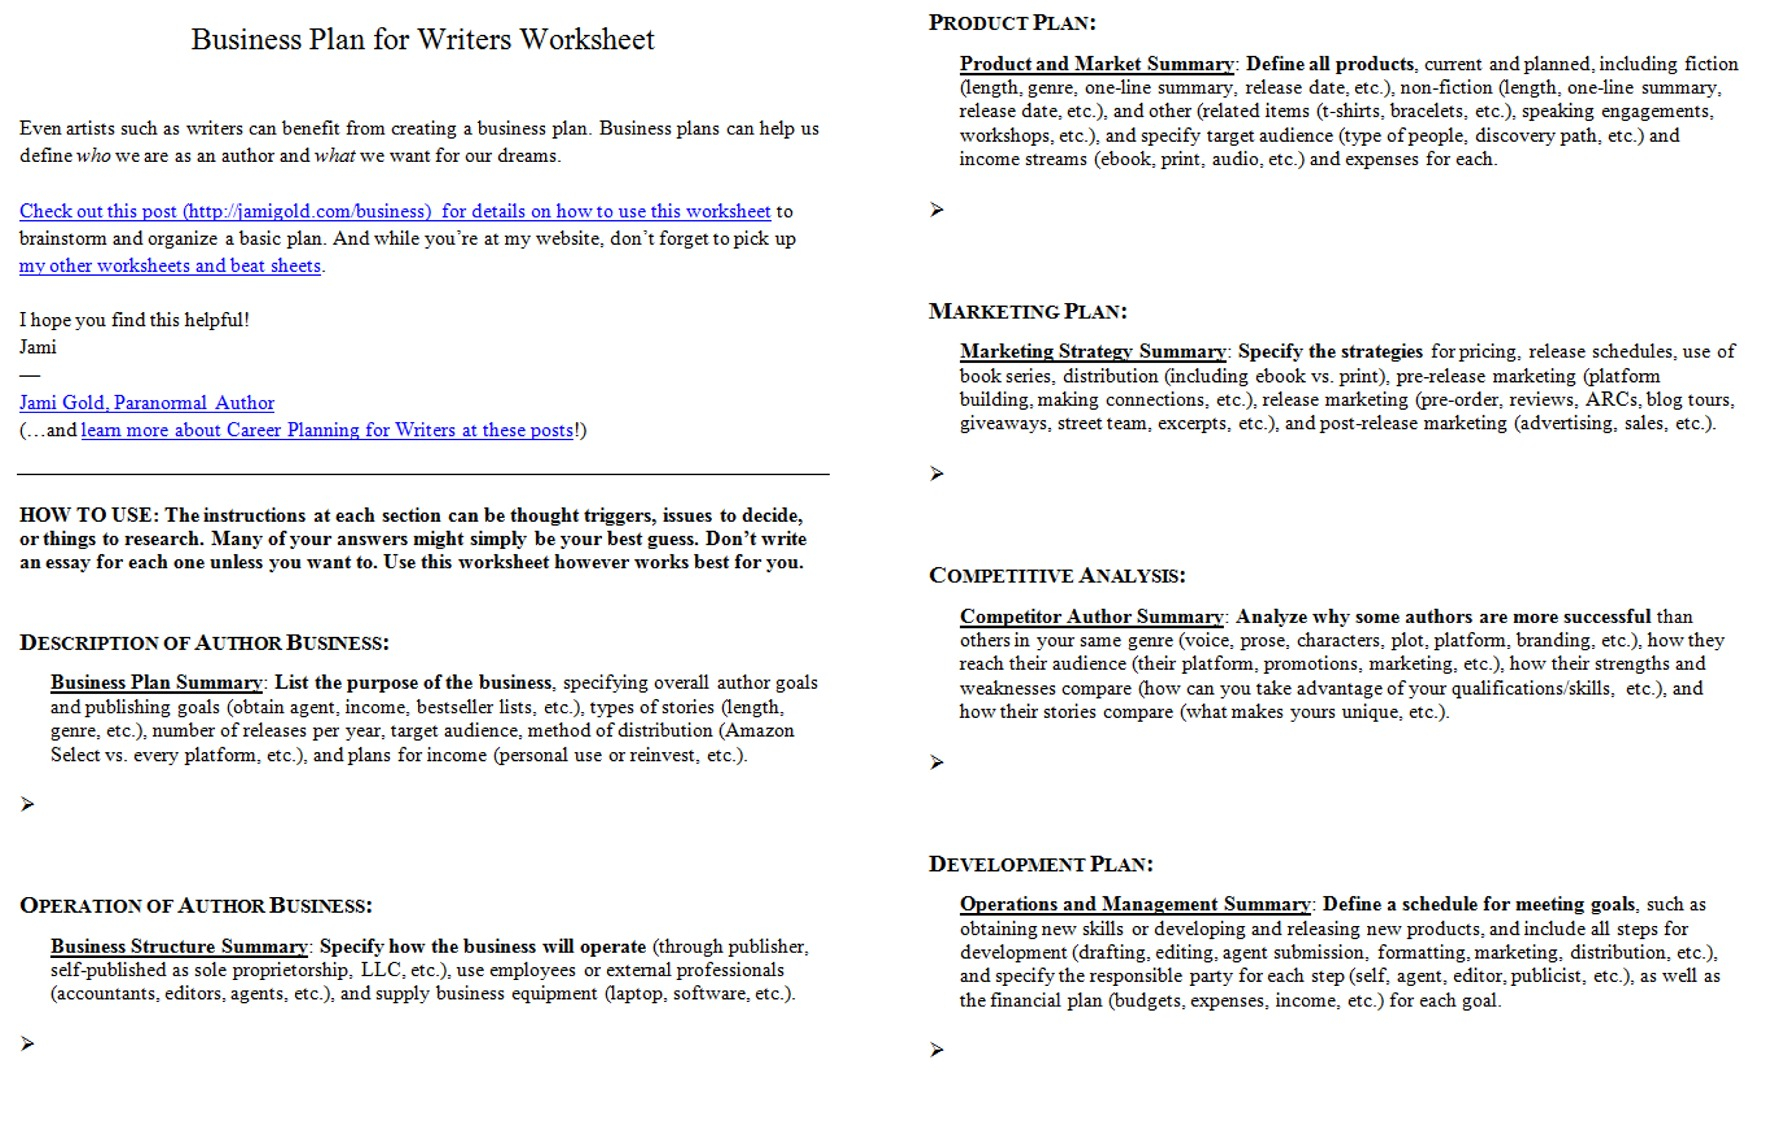 Aldiablosus  Terrific Worksheets For Writers  Jami Gold Paranormal Author With Inspiring Screen Shot Of Both Pages Of The Business Plan For Writers Worksheet With Captivating Accounting Worksheets For Students Also Multiplication Worksheets  Times Tables In Addition Plant Reproduction Worksheets And Past Simple Vs Past Continuous Worksheet As Well As Tracing The Letter I Worksheets For Preschool Additionally Taste Buds Worksheet From Jamigoldcom With Aldiablosus  Inspiring Worksheets For Writers  Jami Gold Paranormal Author With Captivating Screen Shot Of Both Pages Of The Business Plan For Writers Worksheet And Terrific Accounting Worksheets For Students Also Multiplication Worksheets  Times Tables In Addition Plant Reproduction Worksheets From Jamigoldcom